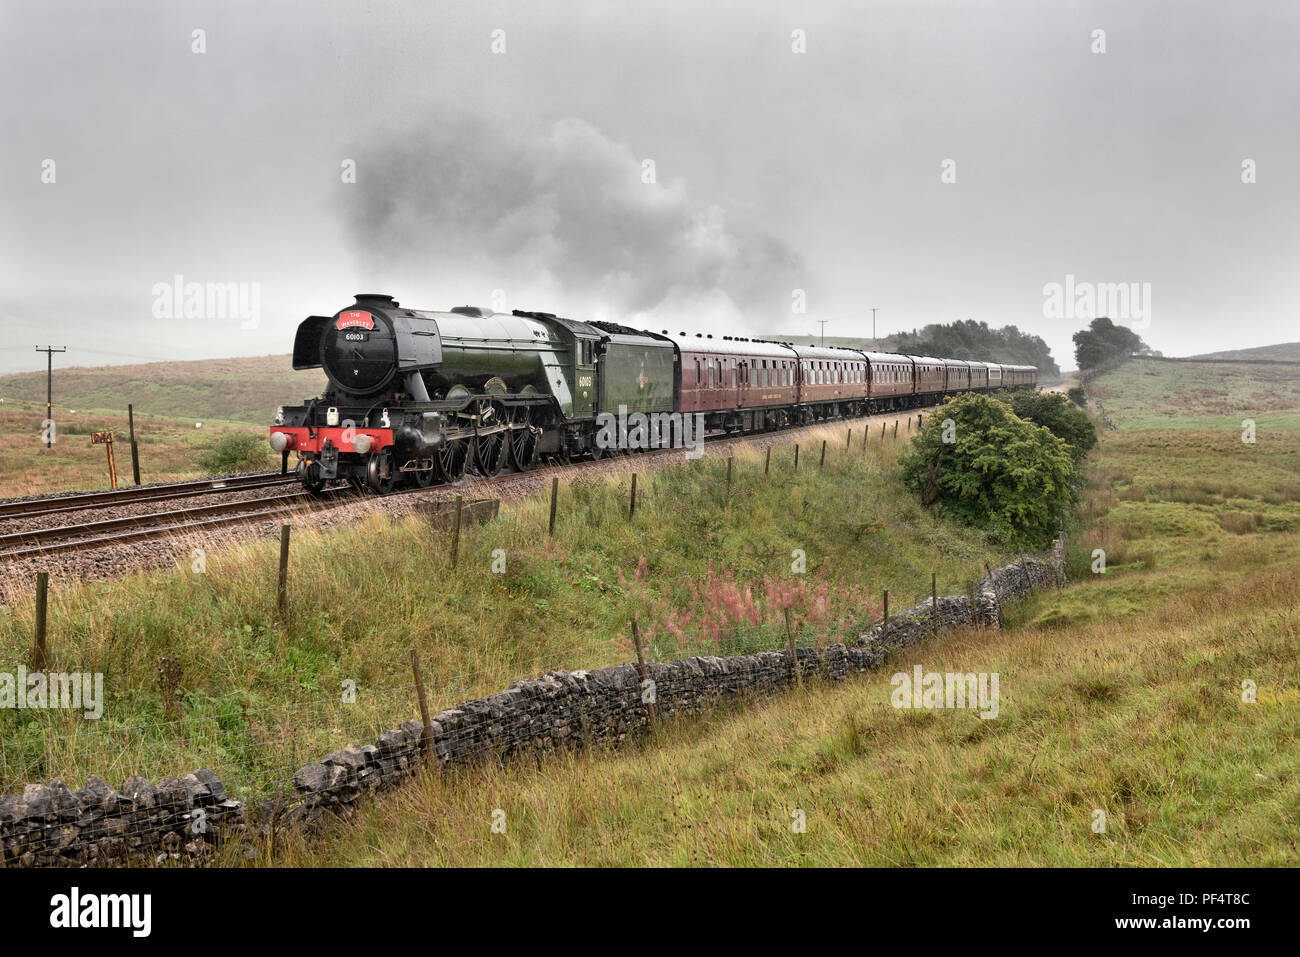 Yorkshire, UK. 19 August 2018. On a wet and overcast day, the famous Flying Scotsman steam locomotive hauls 'The Waverley' special on a York-Carlisle return trip. This is the first steam special to run over the Settle-Carlisle railway line without 'diesel assistance' for some weeks. Until this week the dry conditions required a diesel to be attached behind the steam loco on specials to reduce the likelihood of fires being started by hot discharges from the steam engine. Seen here near Horton-in-Ribblesdale in the Yorkshire Dales National Park. Credit: John Bentley/Alamy Live News - Stock Image